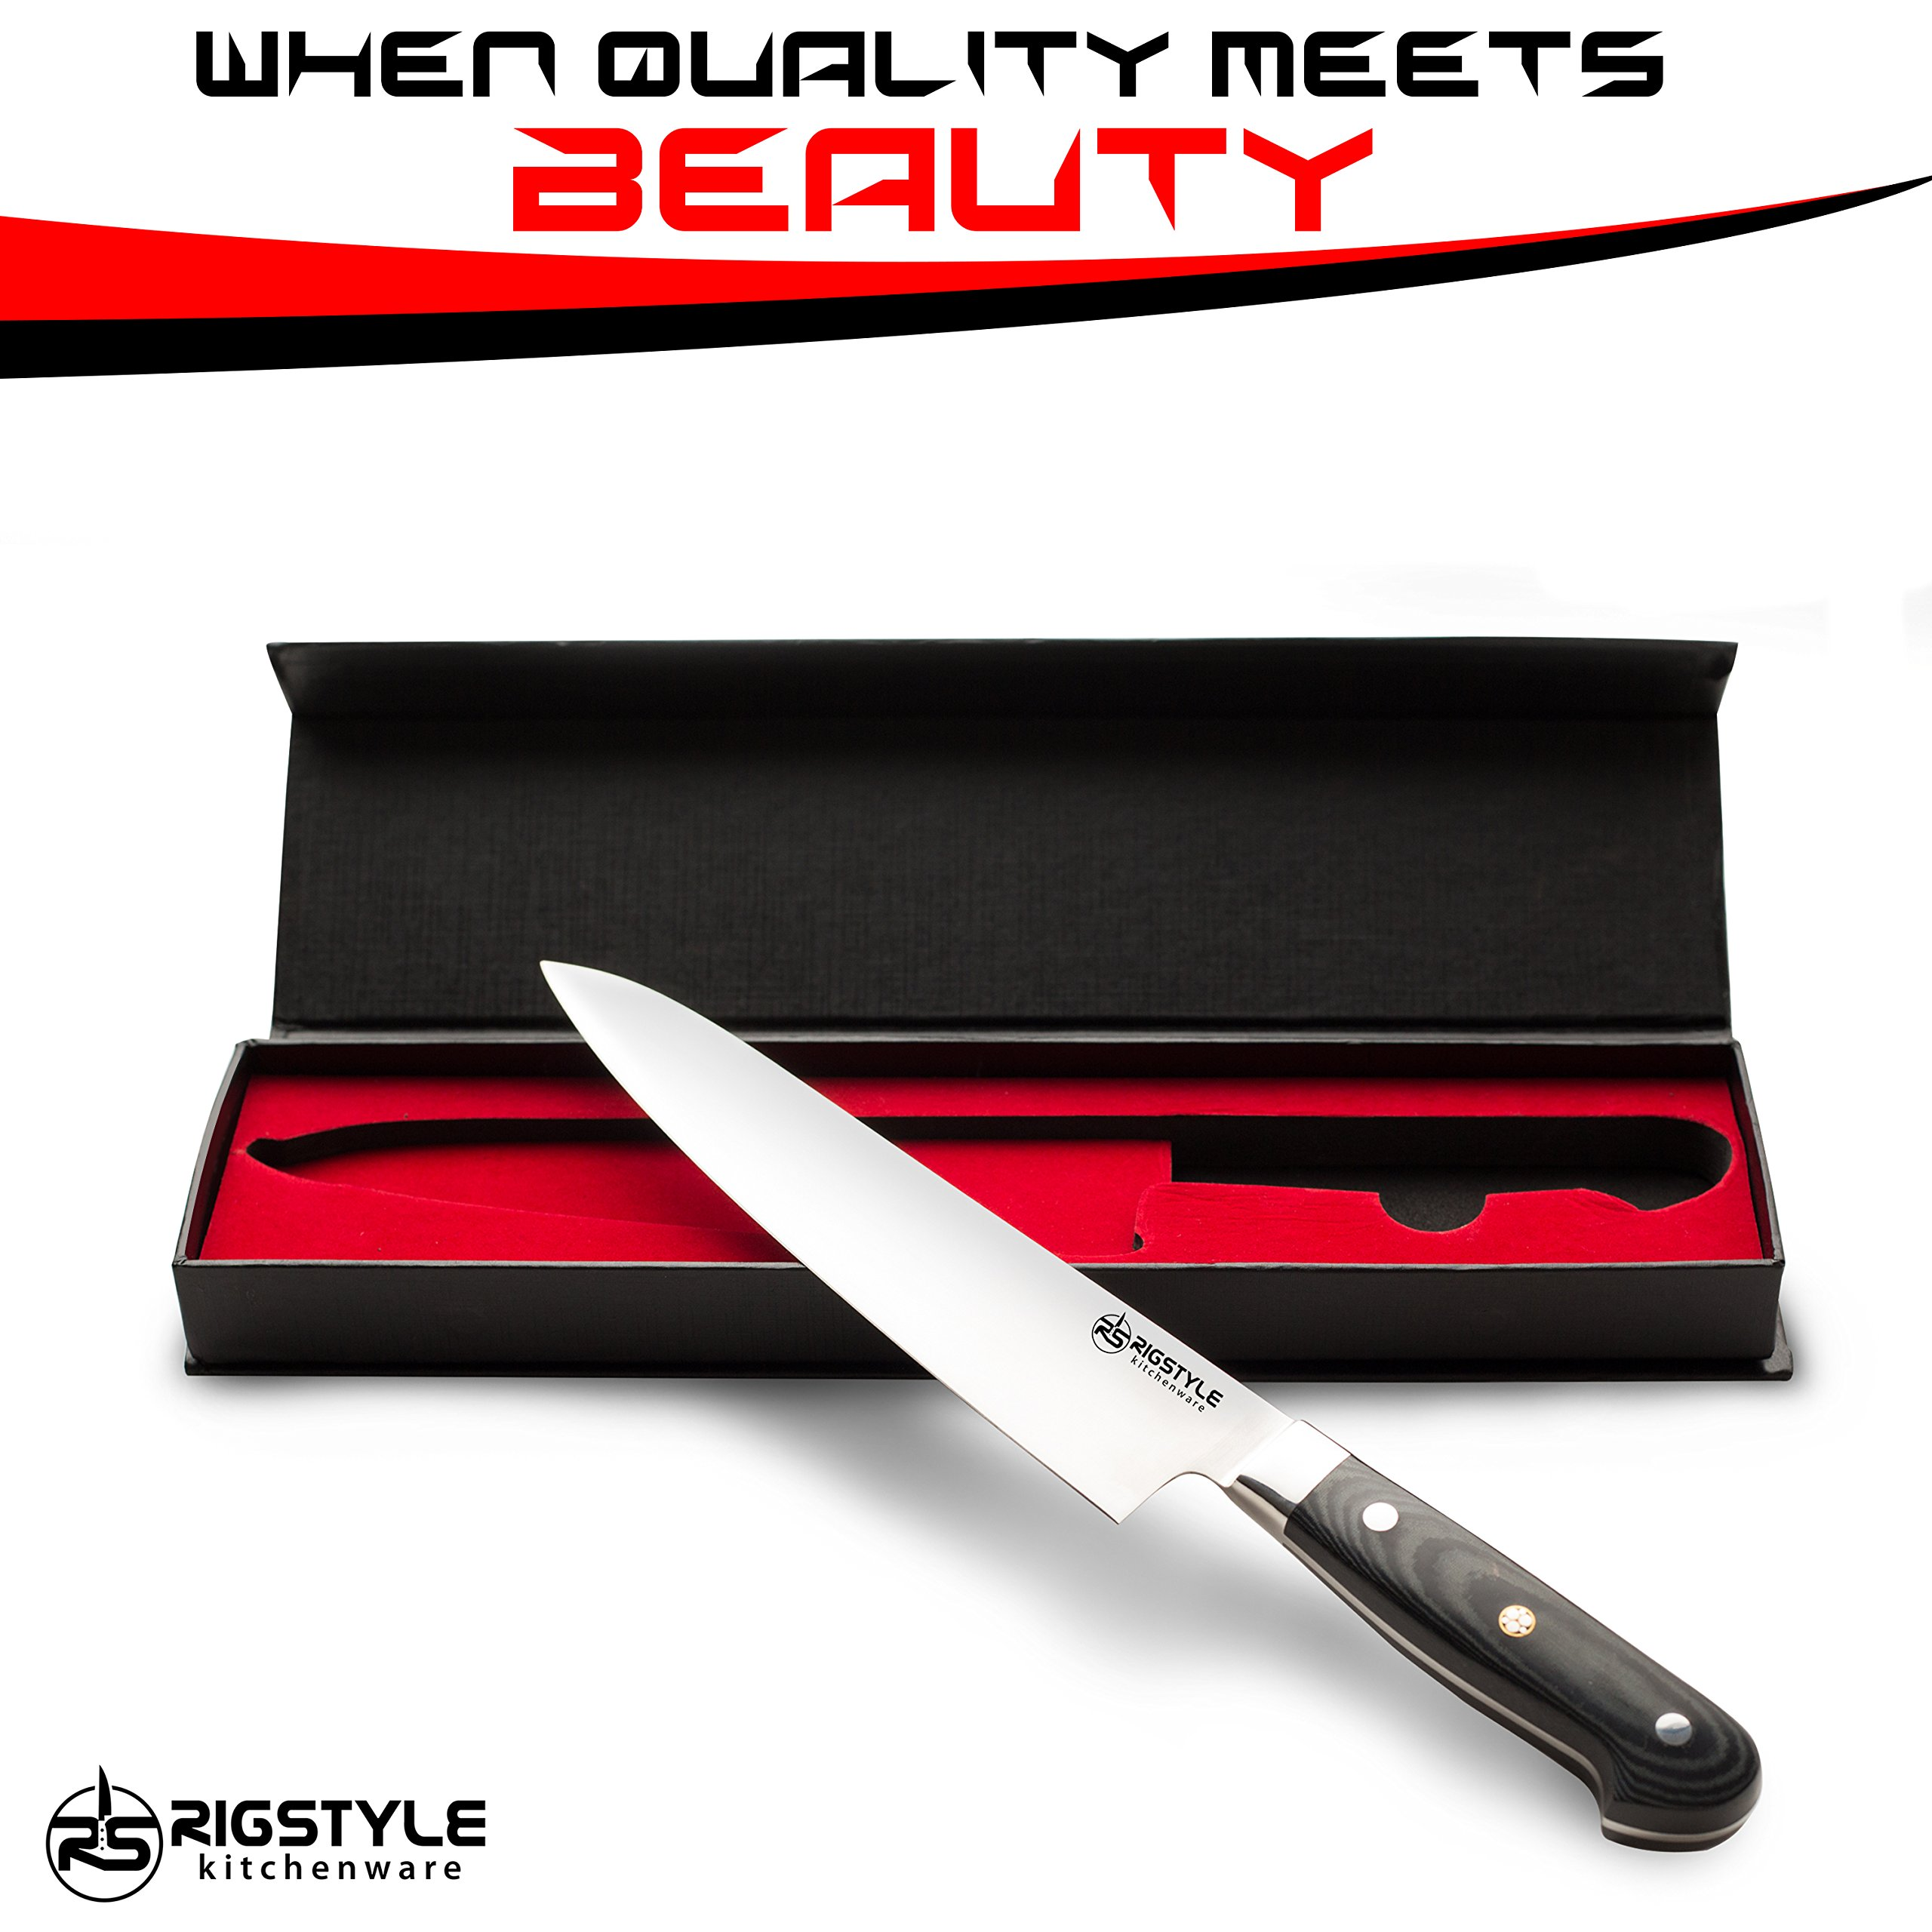 RIGSTYLE German Chef Knife 8 inch, High Carbon Stainless Steel, Sharp Blade with Ergonomic Handle for Professional Restaurants & Home Kitchens, Meat, Fish, Chicken & Vegetables Chopper, with Gift Box by RIGSTYLE (Image #8)